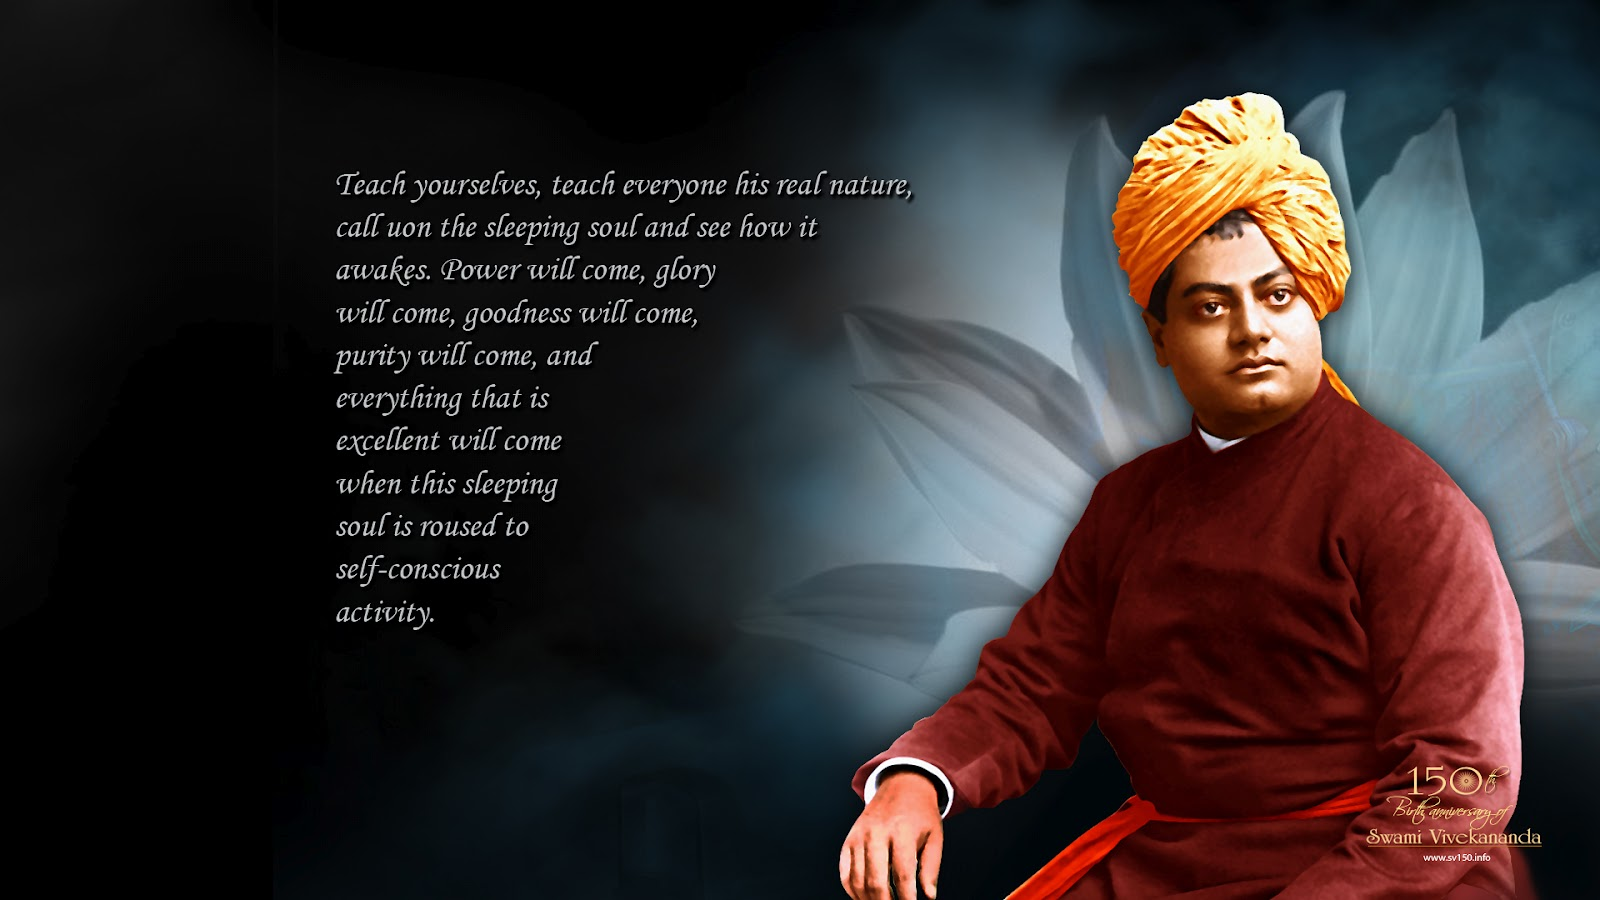 swami vivekananda in tamil Enjoy the best swami vivekananda quotes at brainyquote quotations by swami vivekananda, indian clergyman, born january 12, 1863 share with your friends.